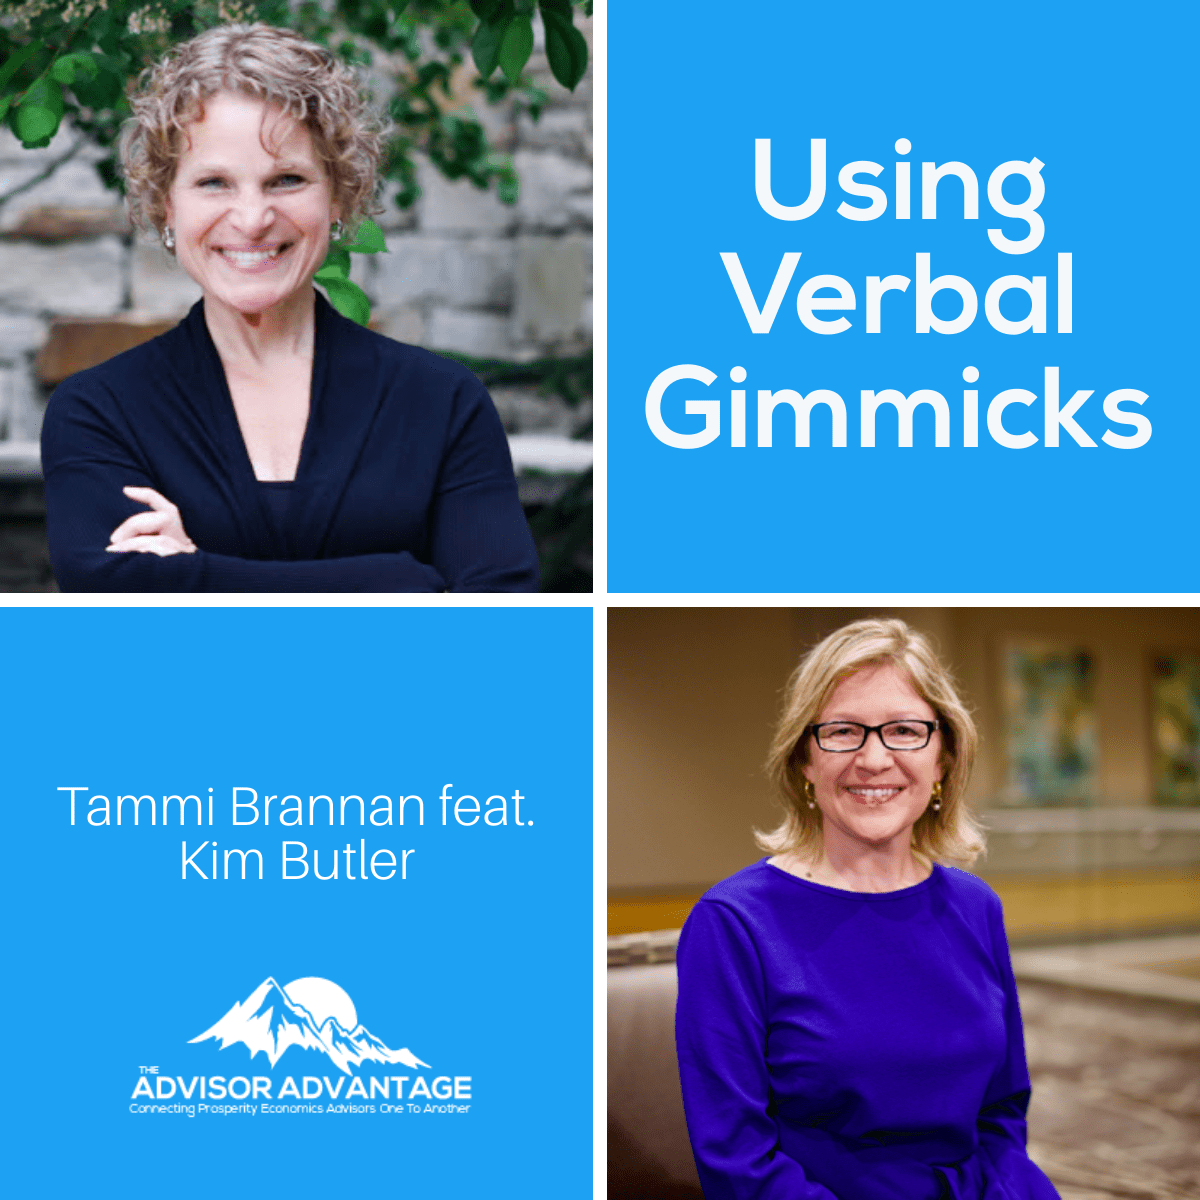 Using Verbal Gimmicks with Kim Butler – Episode 213